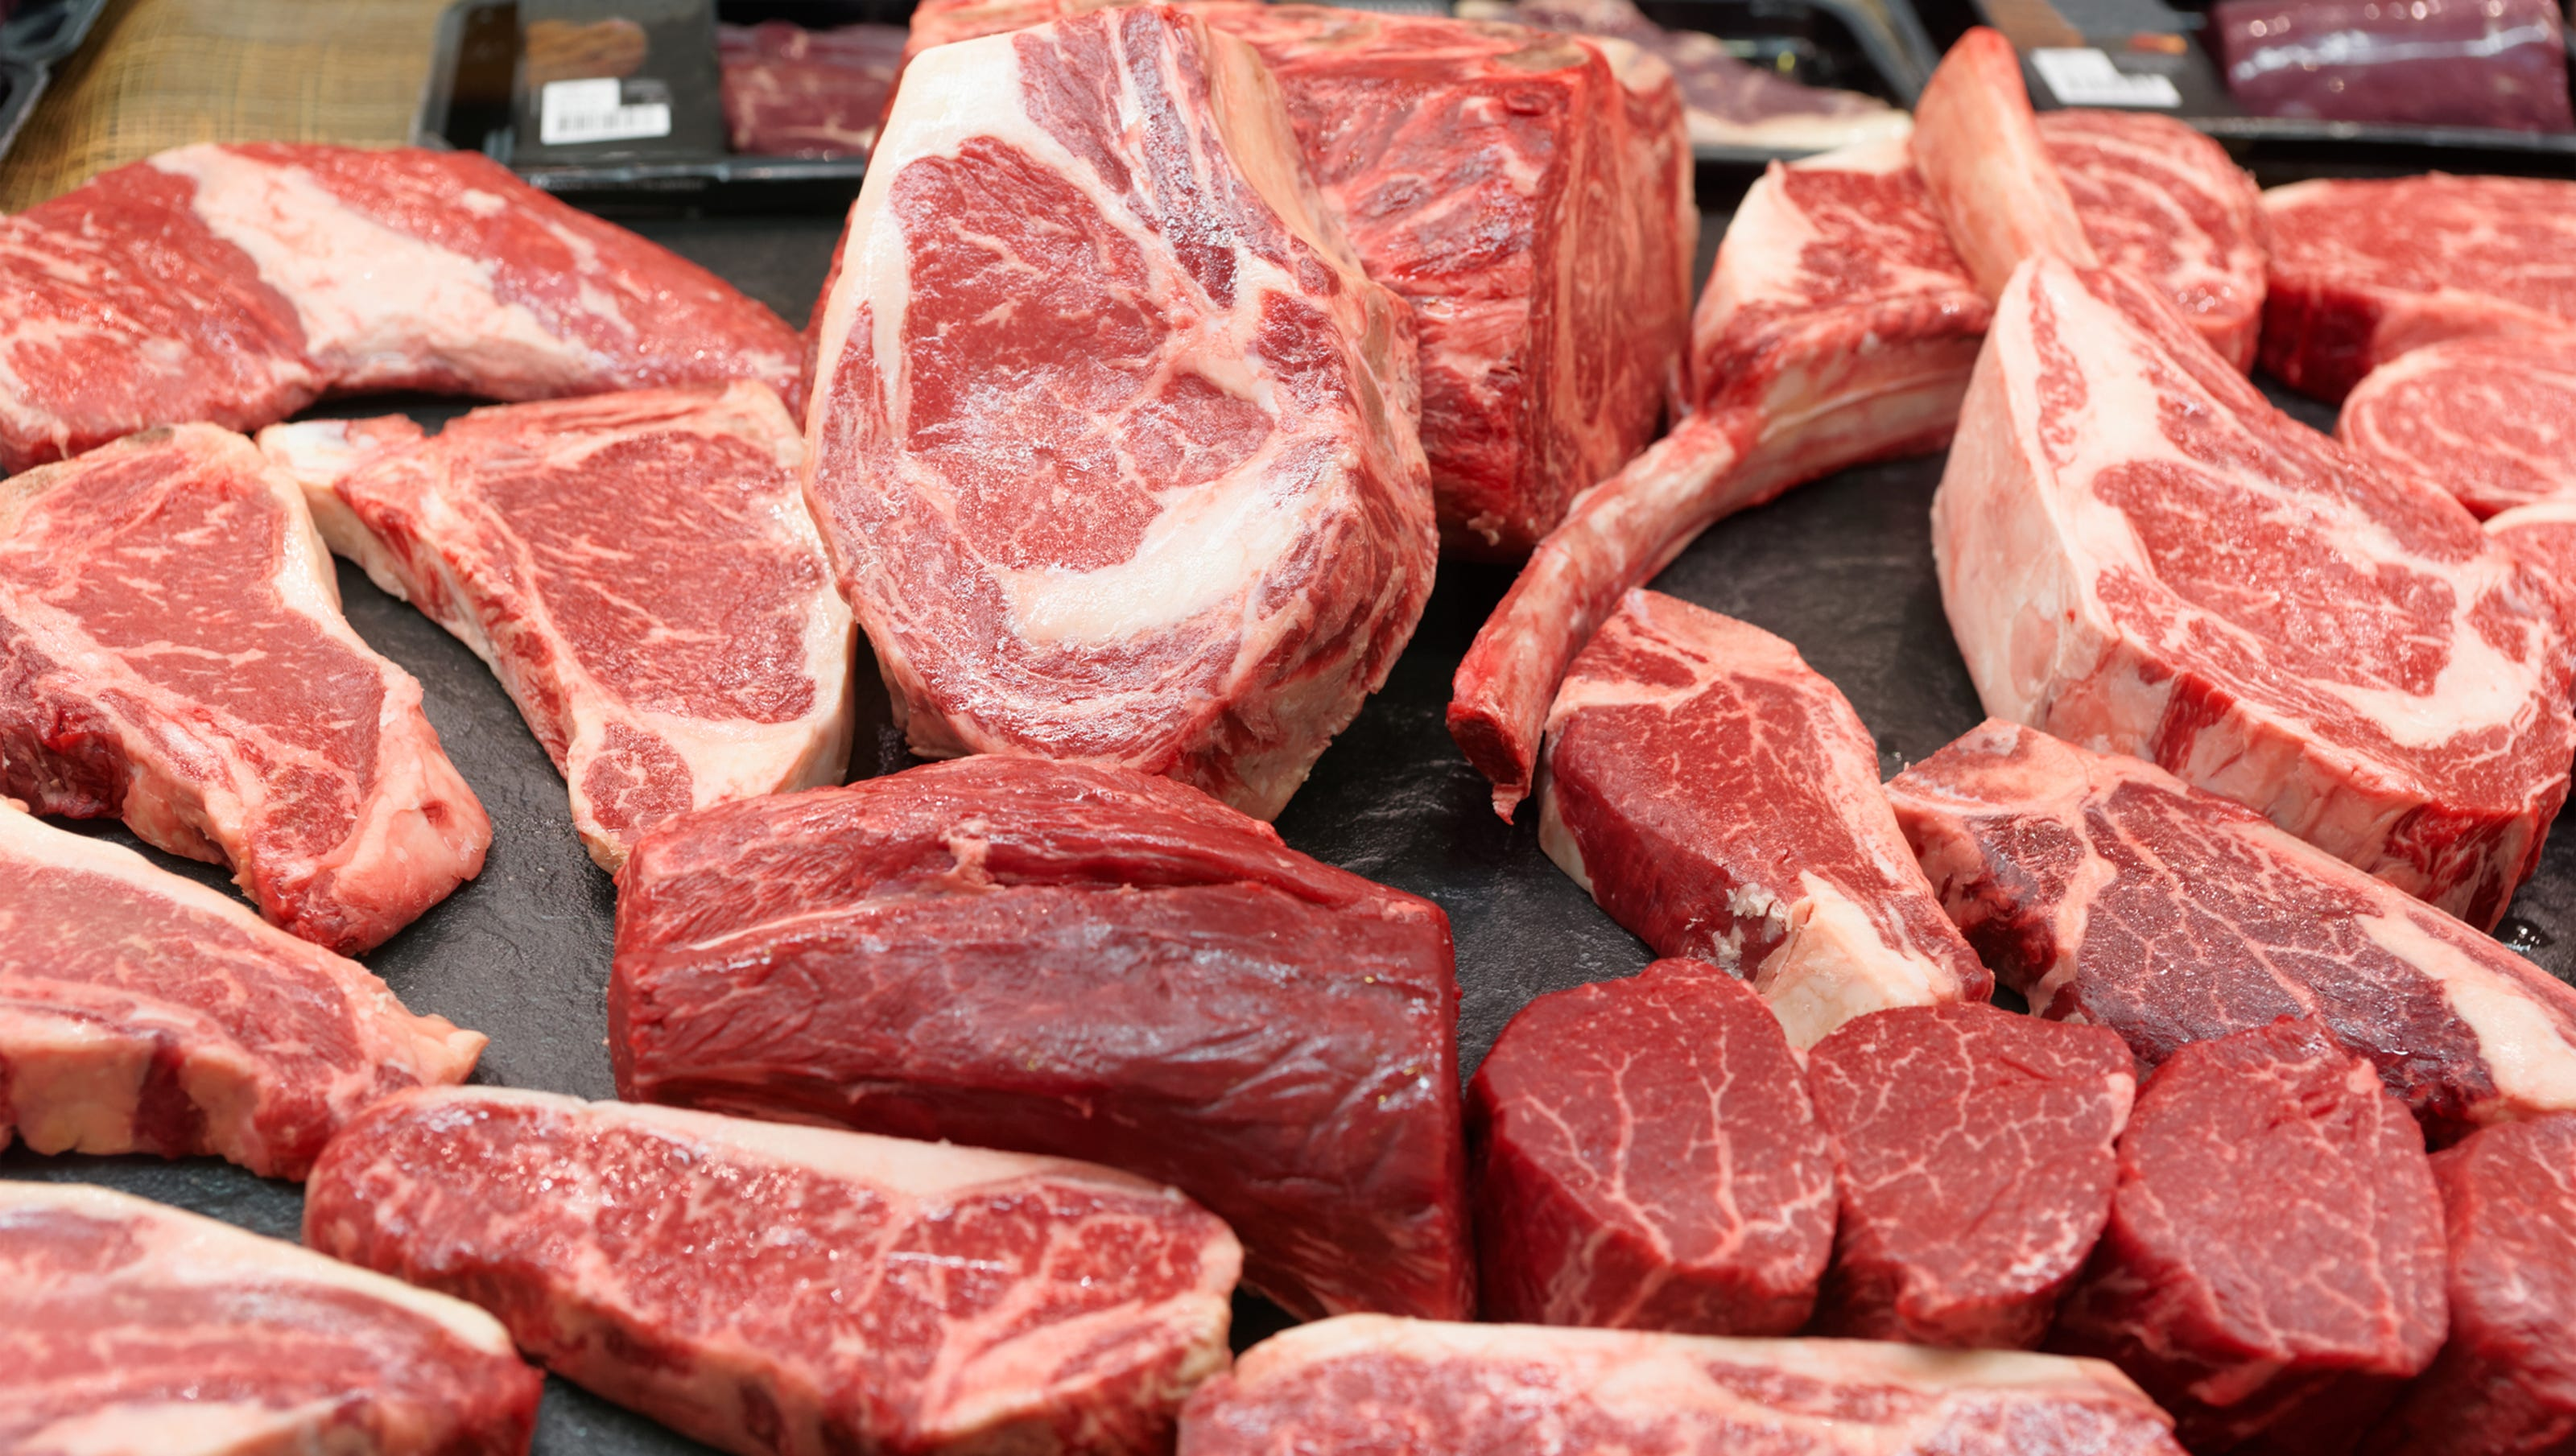 More than 7,000 pounds of raw beef sent to 9 states has ...